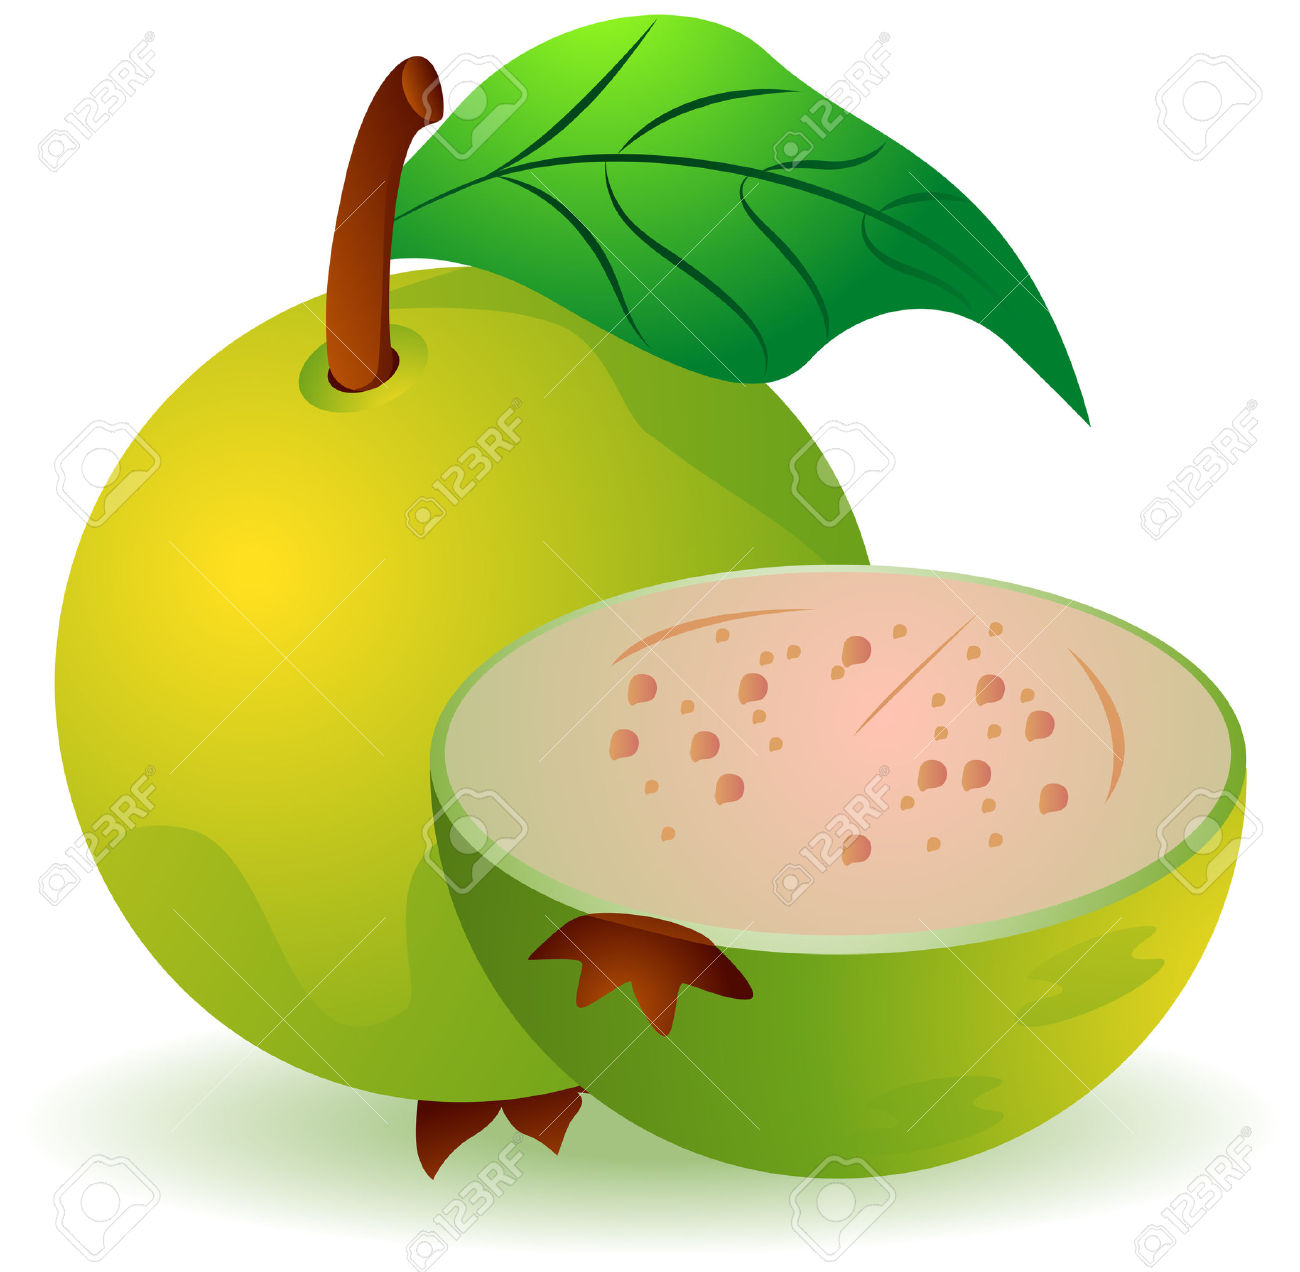 Guava images clipart vector royalty free download Clipart guava » Clipart Station vector royalty free download